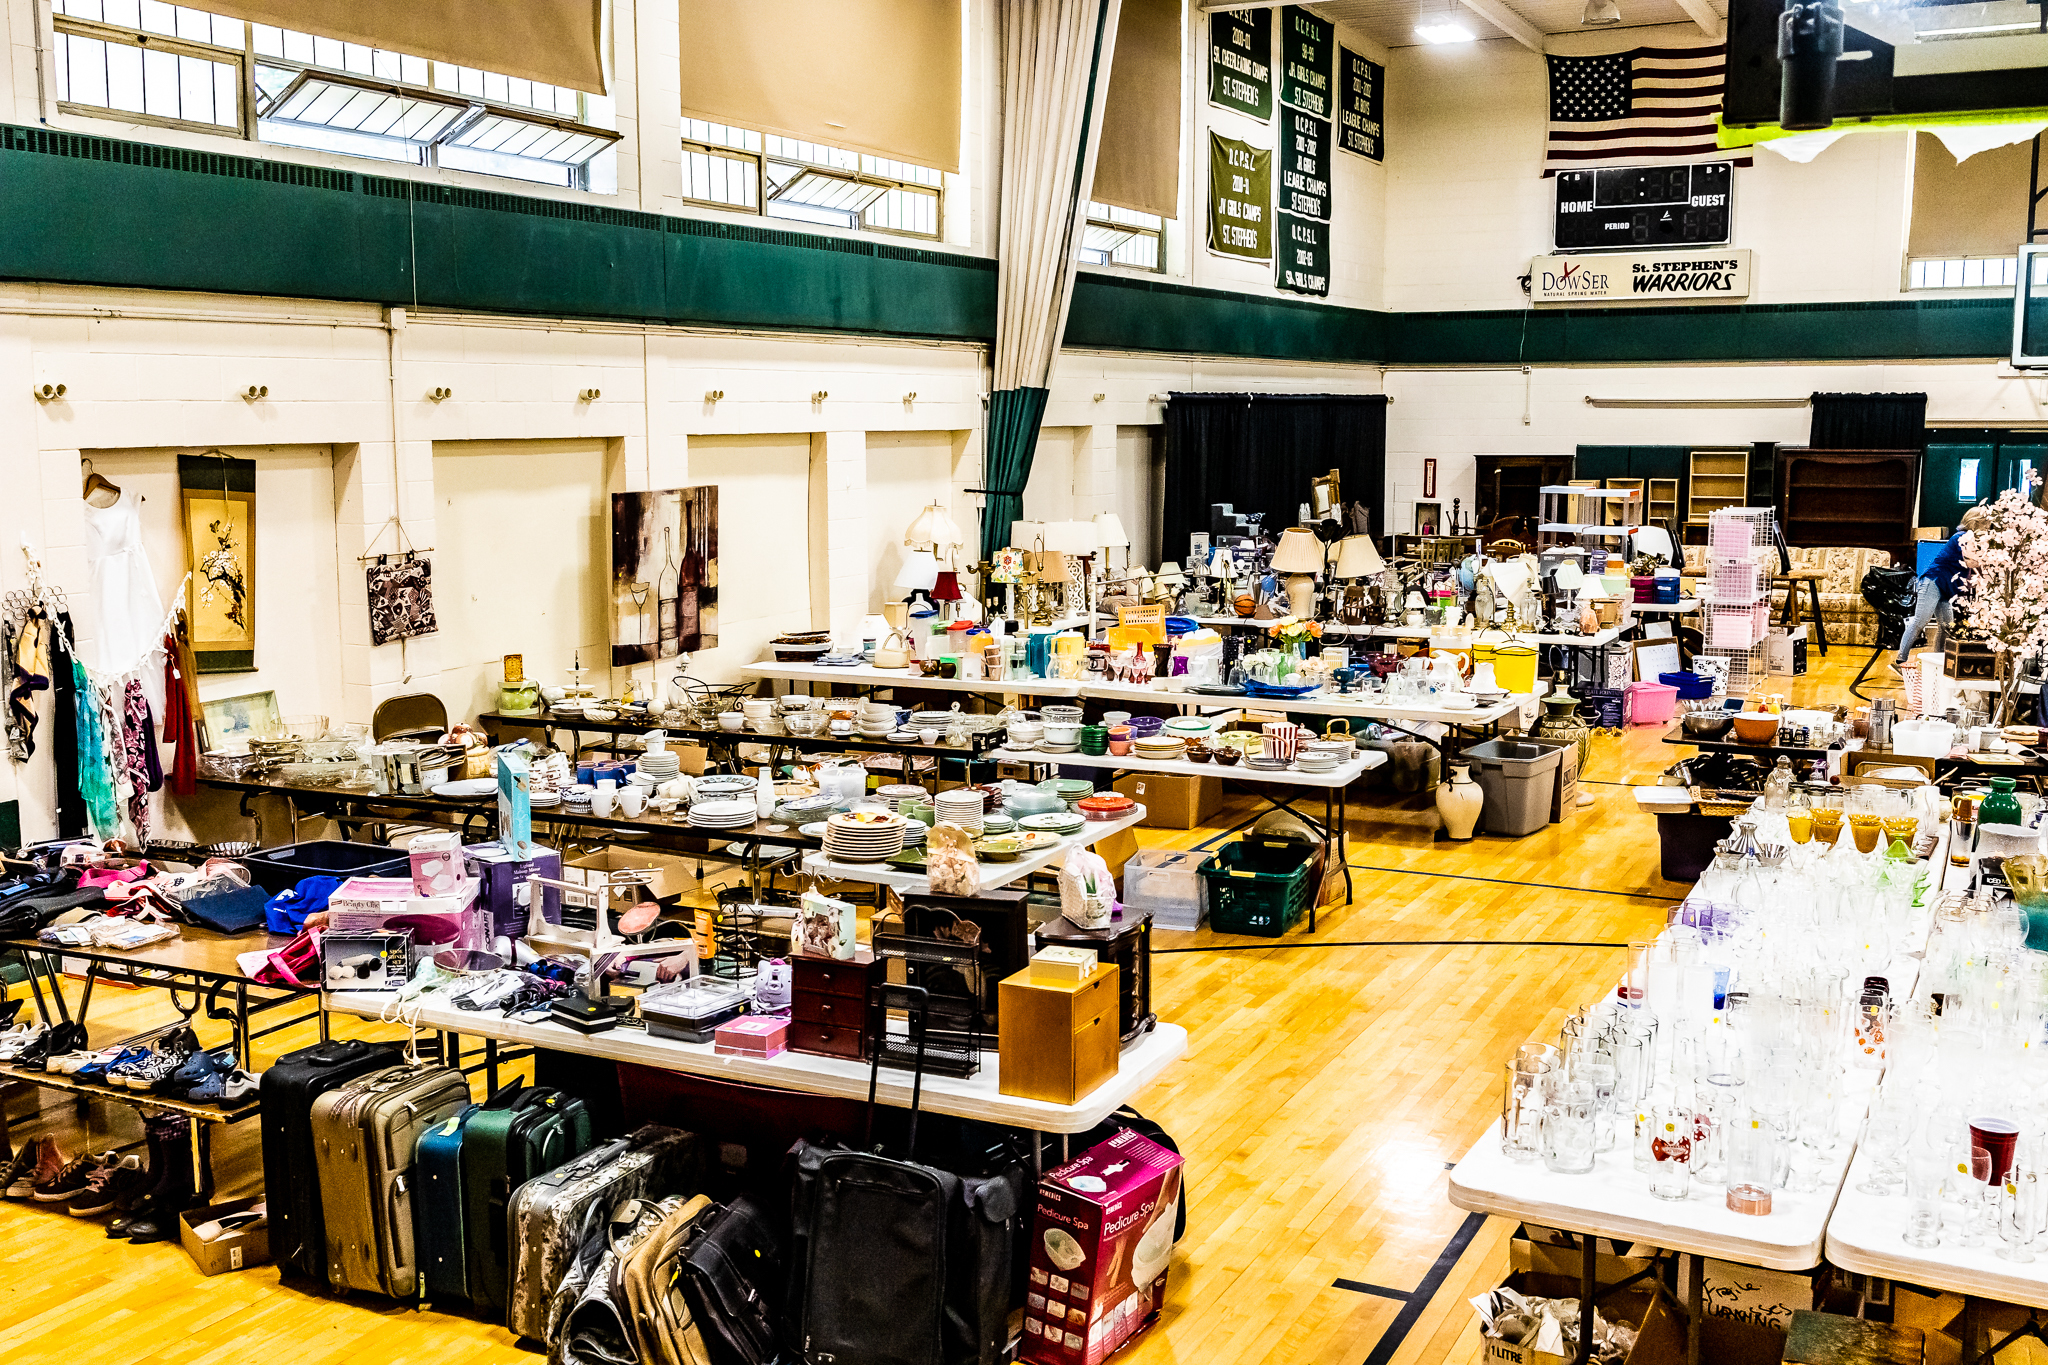 Tag Sale Time!